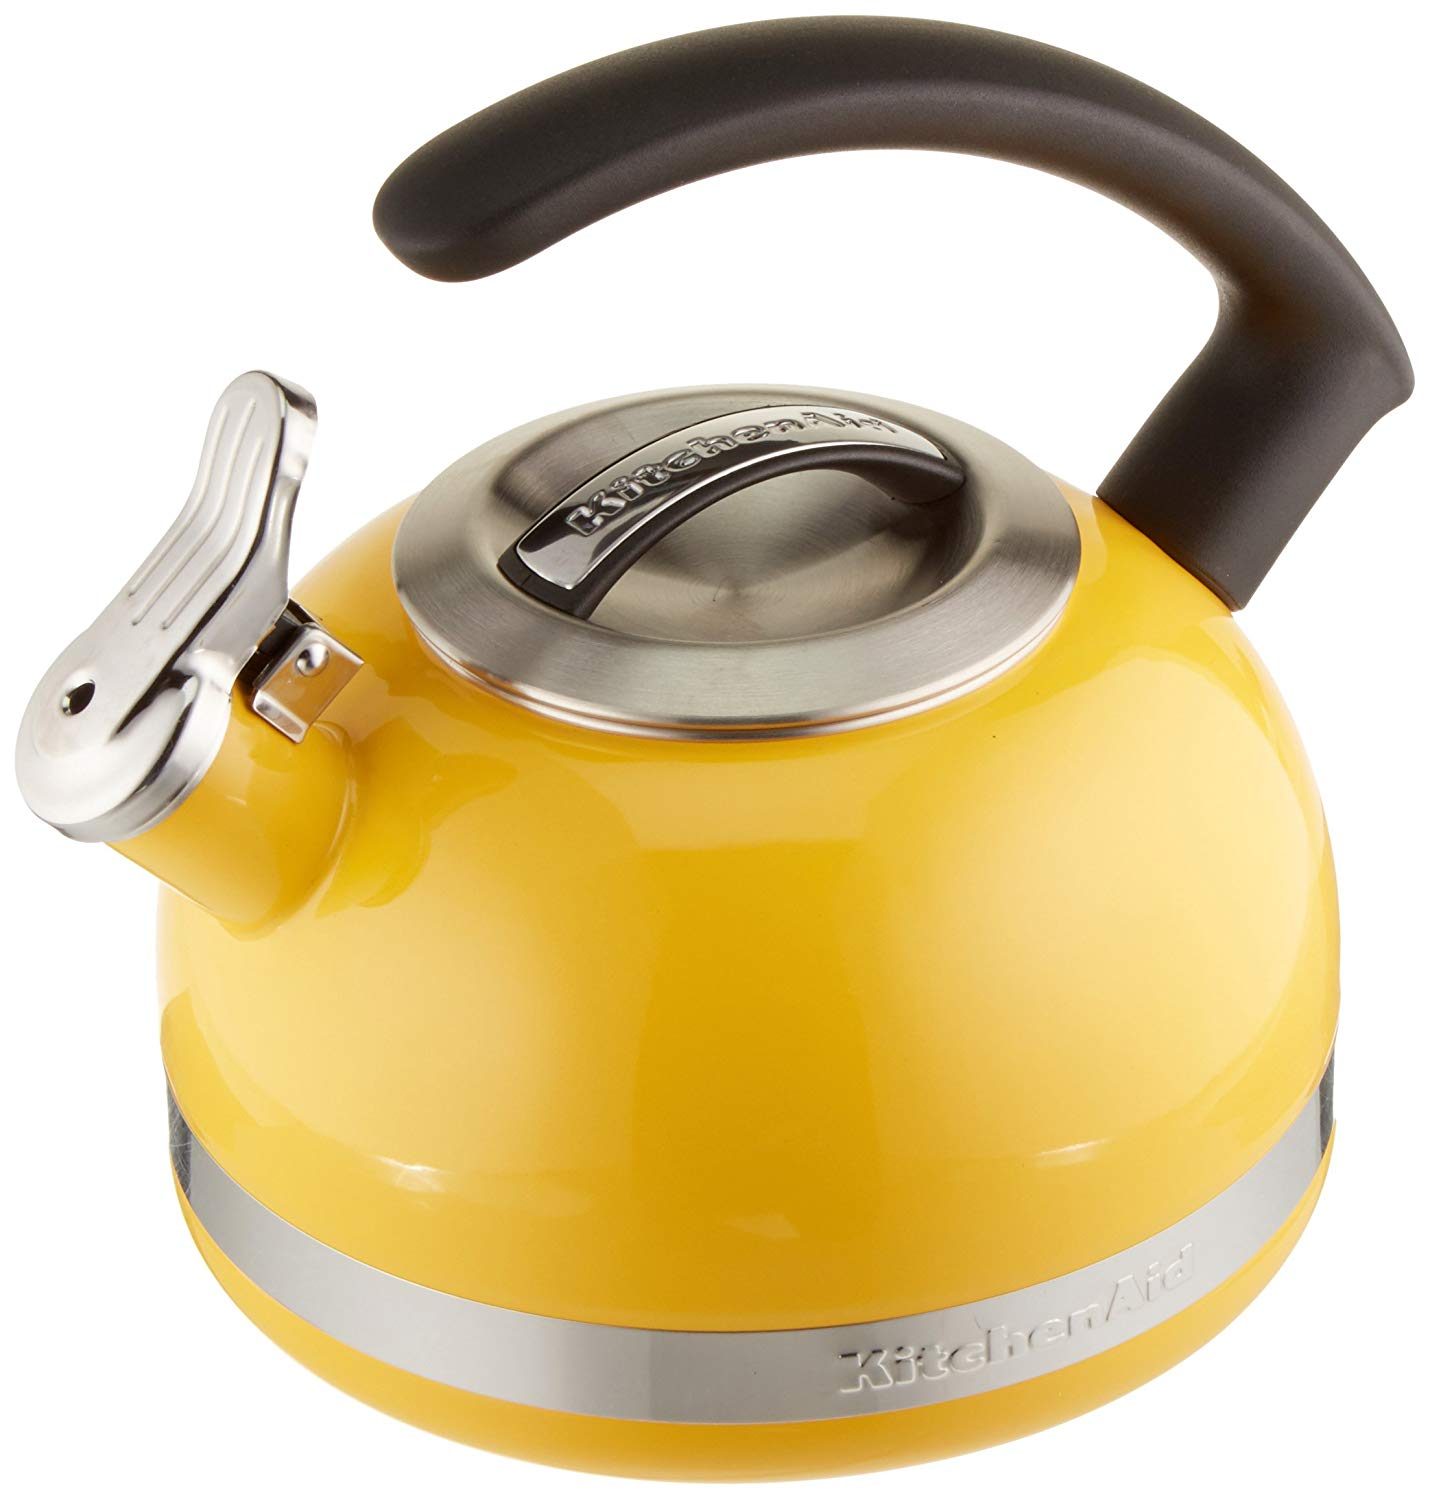 KitchenAid 2.0-Quart Tea Kettle